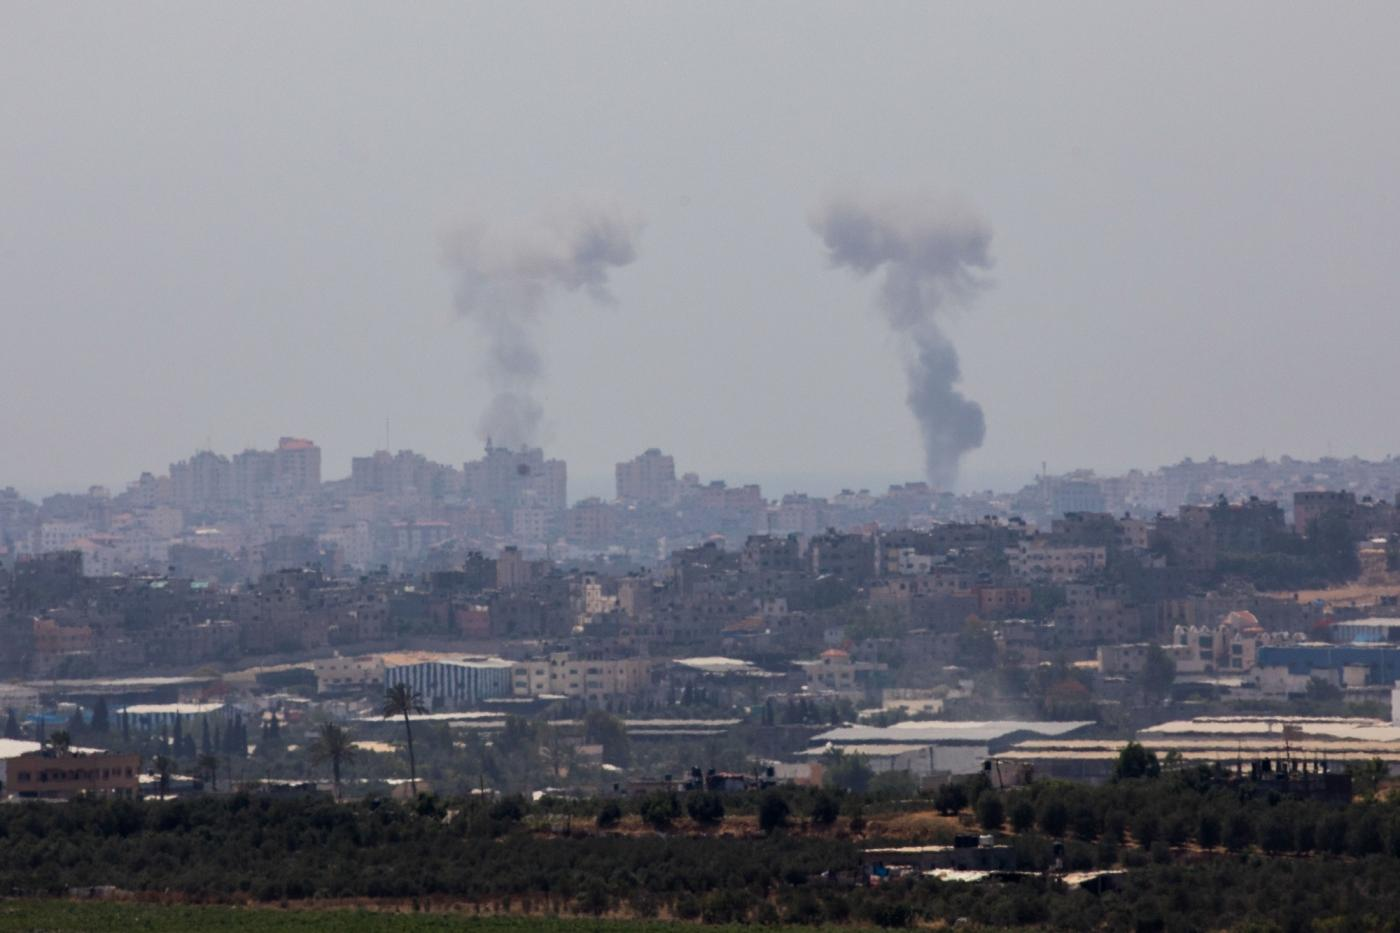 JERUSALEM, May 29, 2018 (Xinhua) -- Smoke rises from Gaza Strip on May 29, 2018. Palestinian militants fired dozens of mortars, projectiles and rockets into Israel throughout Tuesday before Israel launched a wide-scale airstrike on Gaza, as tensions rise following weeks of lethal Israeli fire at Gaza protestors. (Xinhua/JINI/IANS) by .